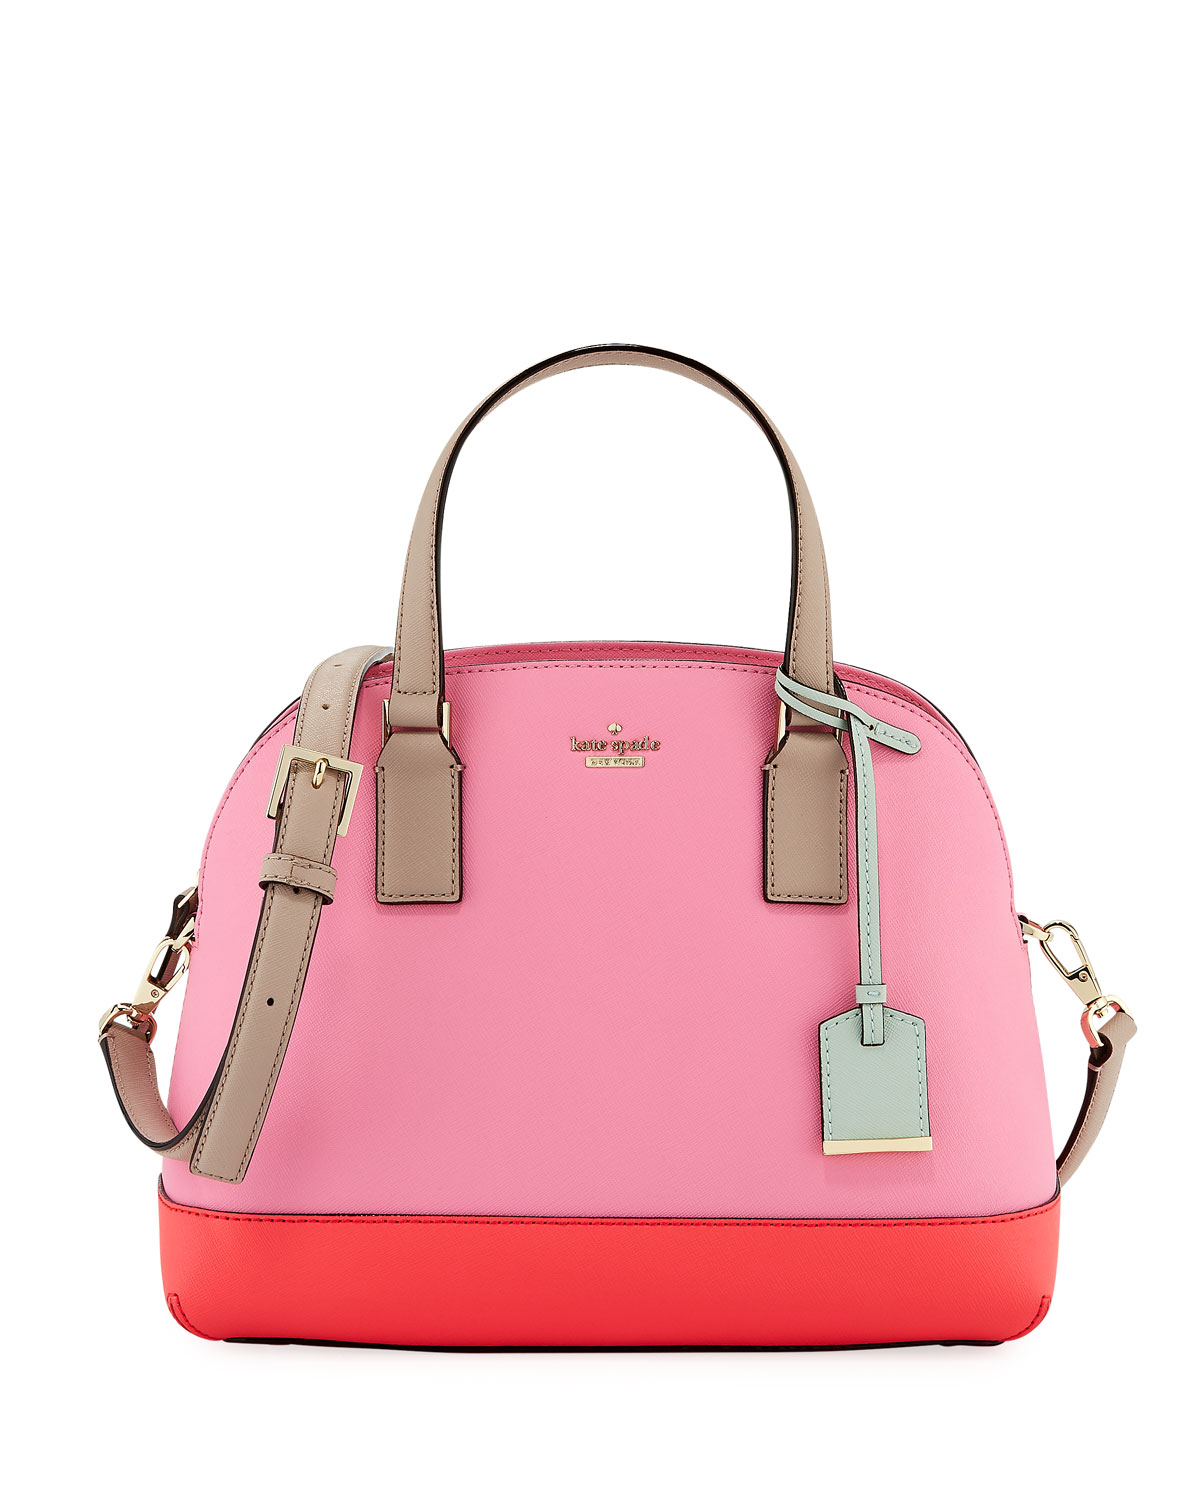 404e3cf38fc5e kate spade new york cameron street lottie satchel bag